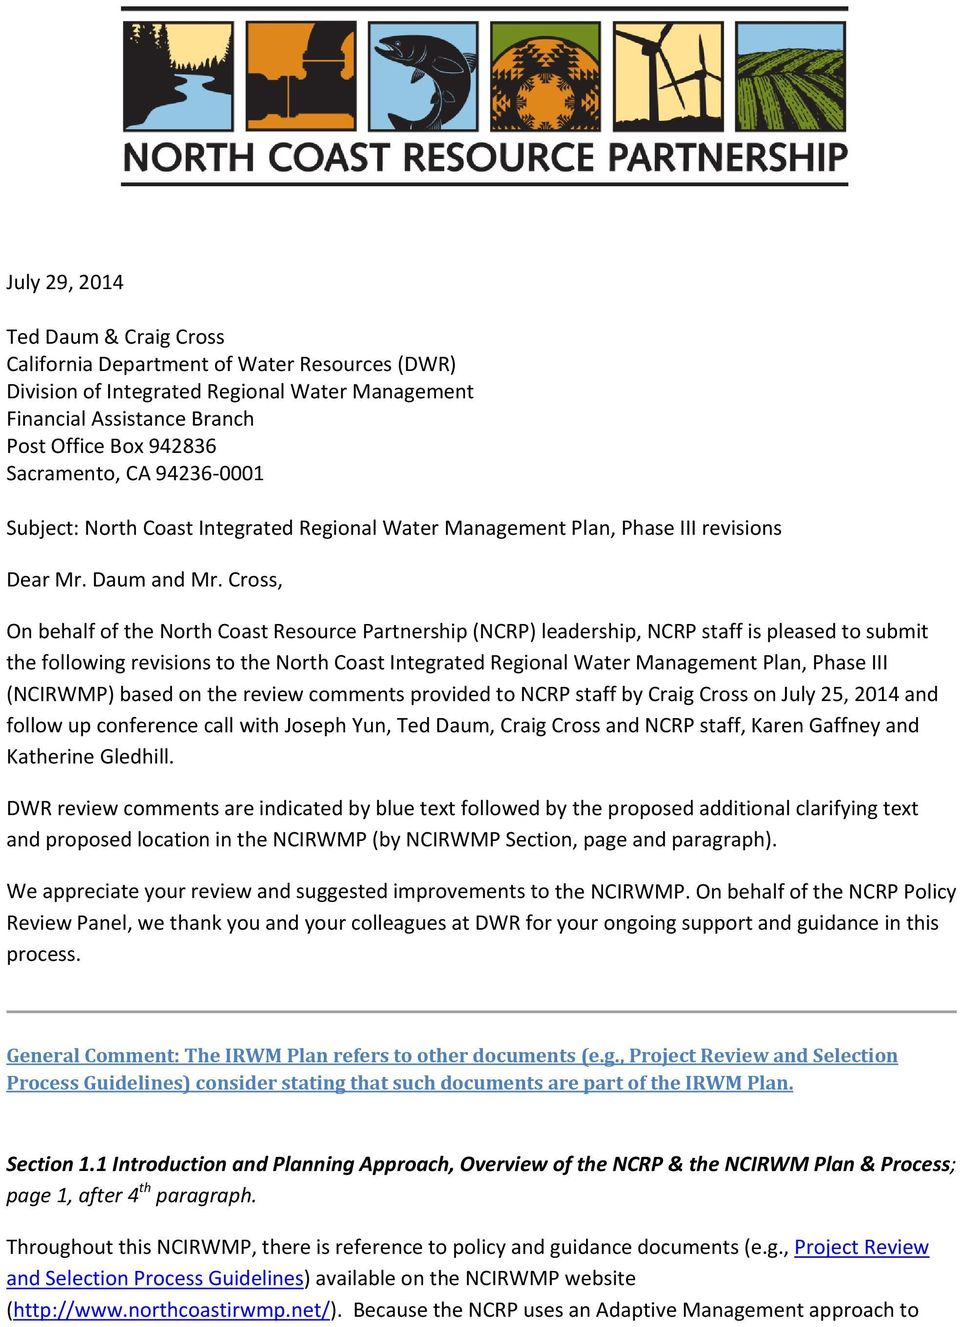 Cross, On behalf of the North Coast Resource Partnership (NCRP) leadership, NCRP staff is pleased to submit the following revisions to the North Coast Integrated Regional Water Management Plan, Phase